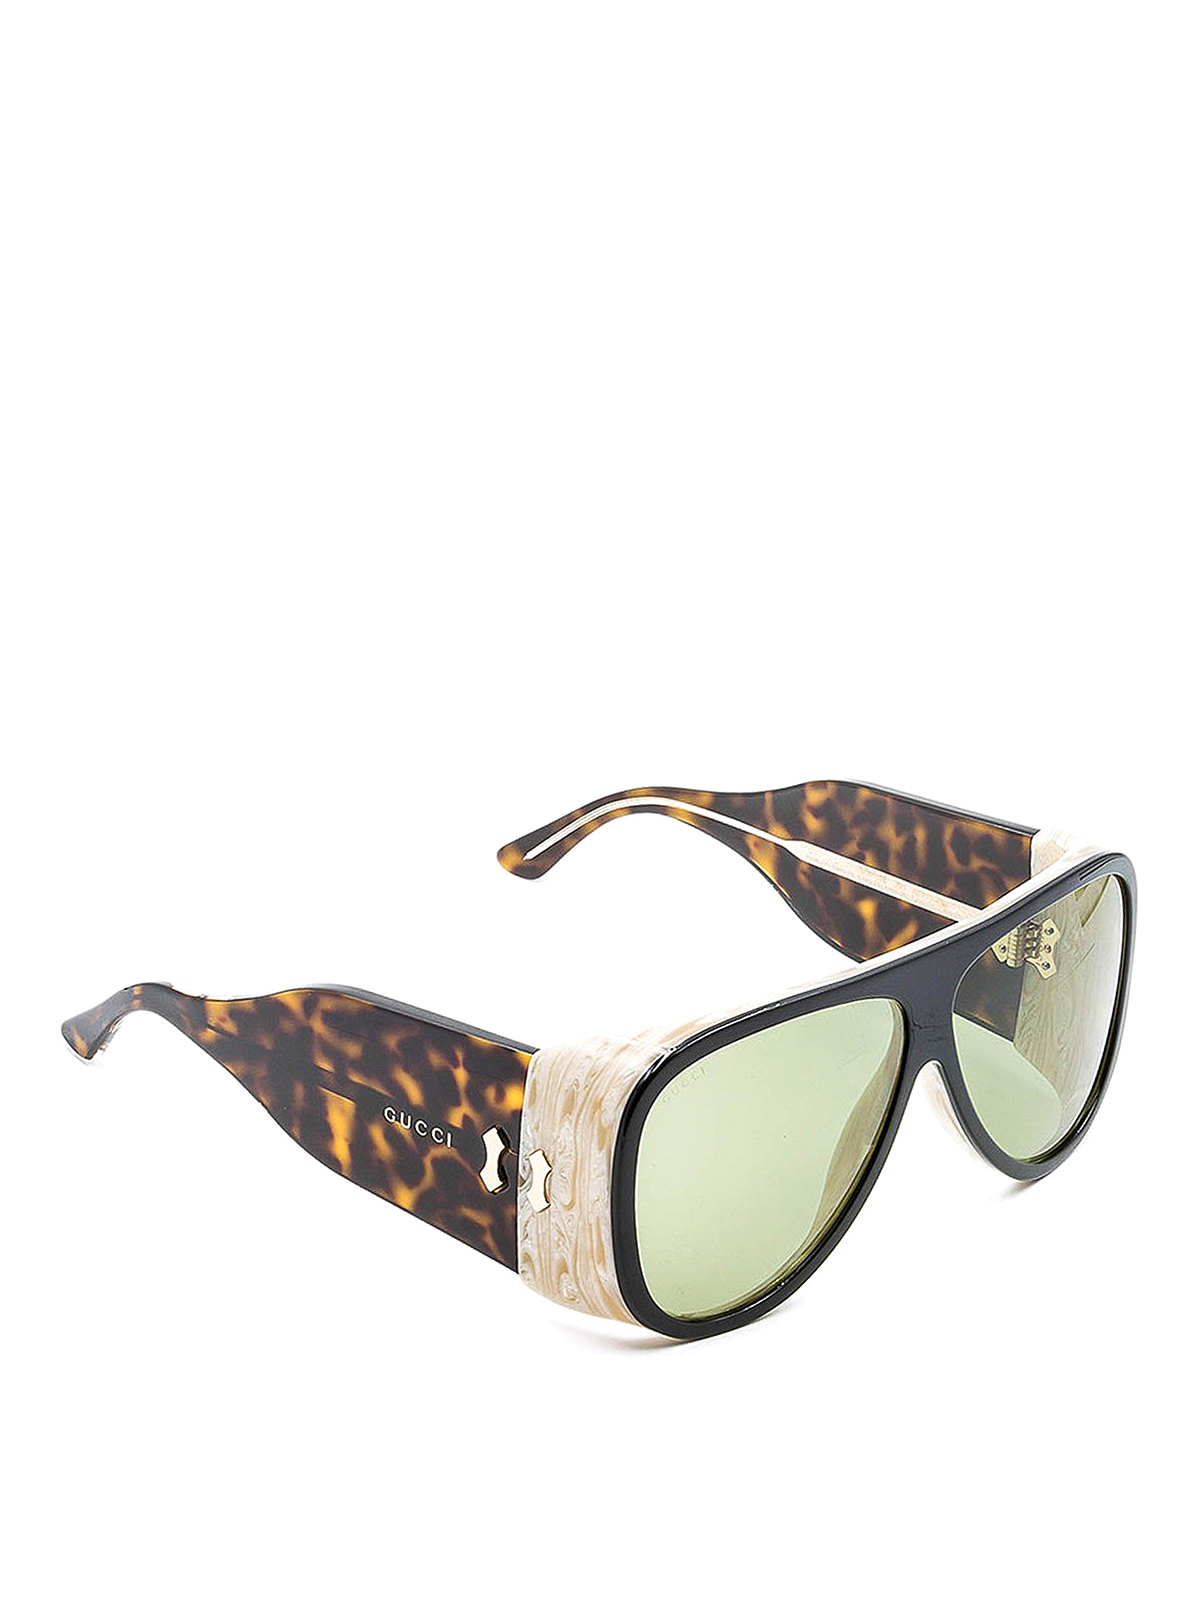 Gucci Maxi Aviator Sunglasses In Brown